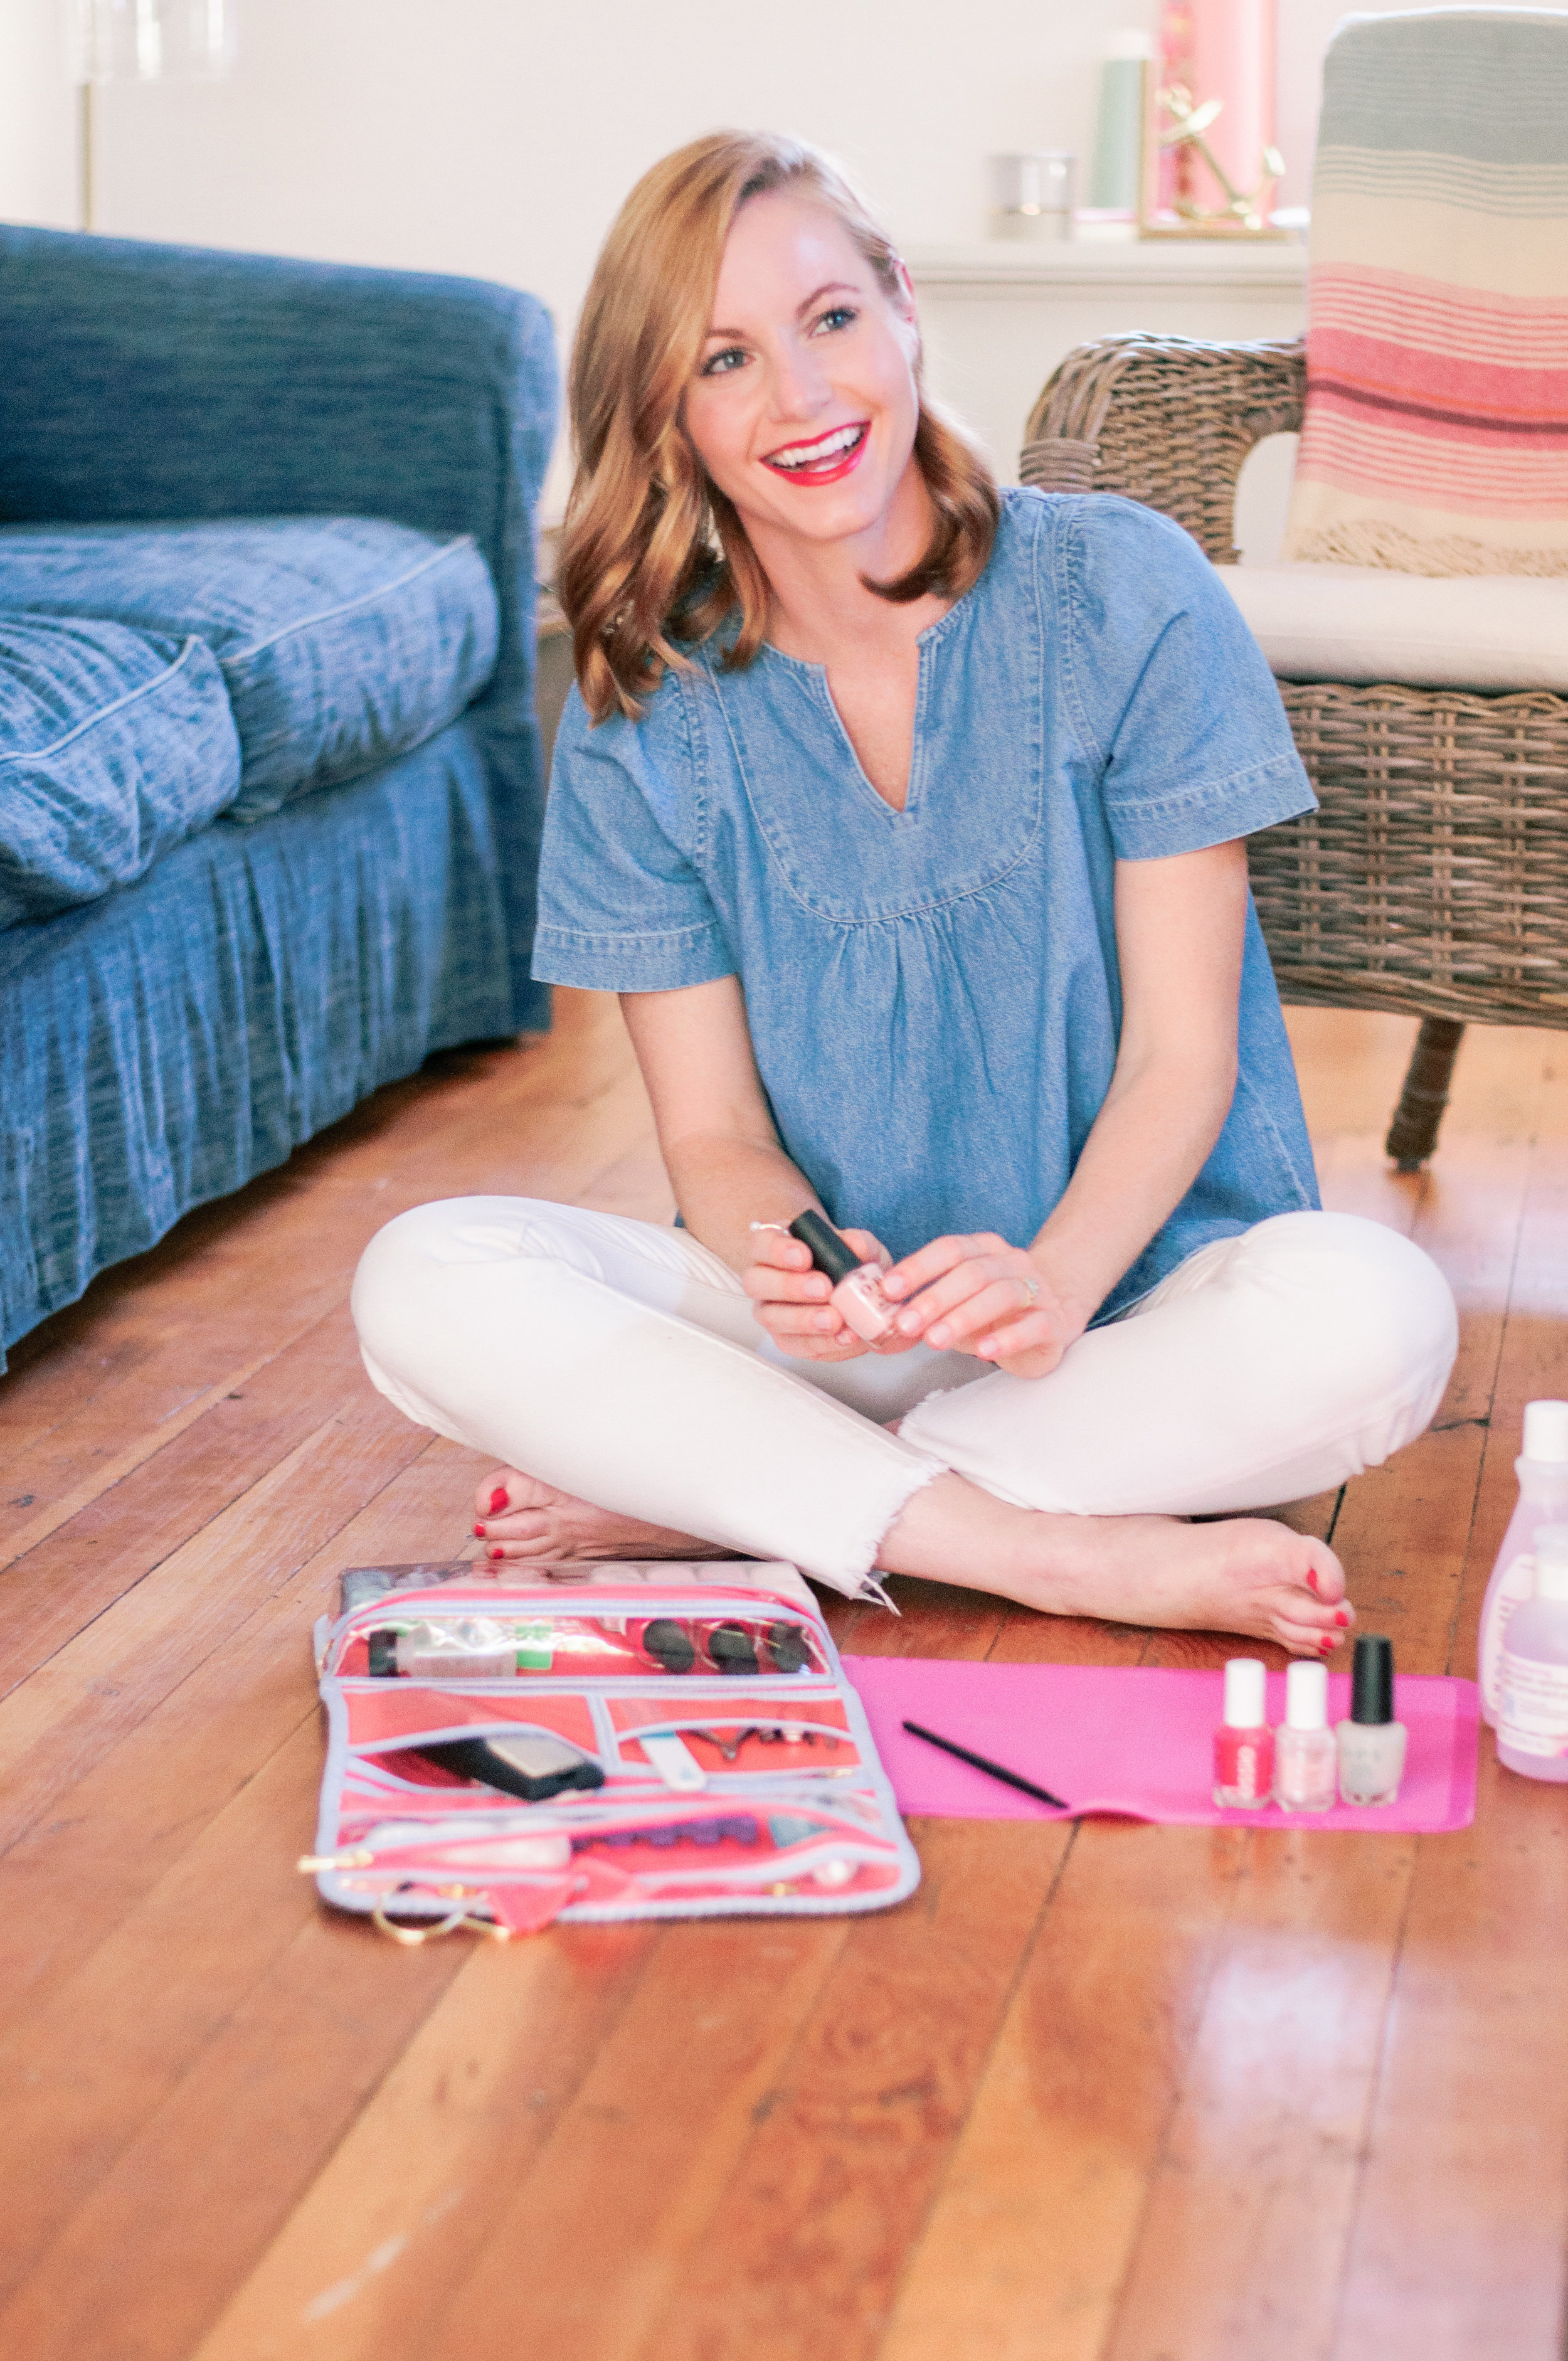 The Best Tips for the Perfect Easy At Home DIY Manicure and Pedicure